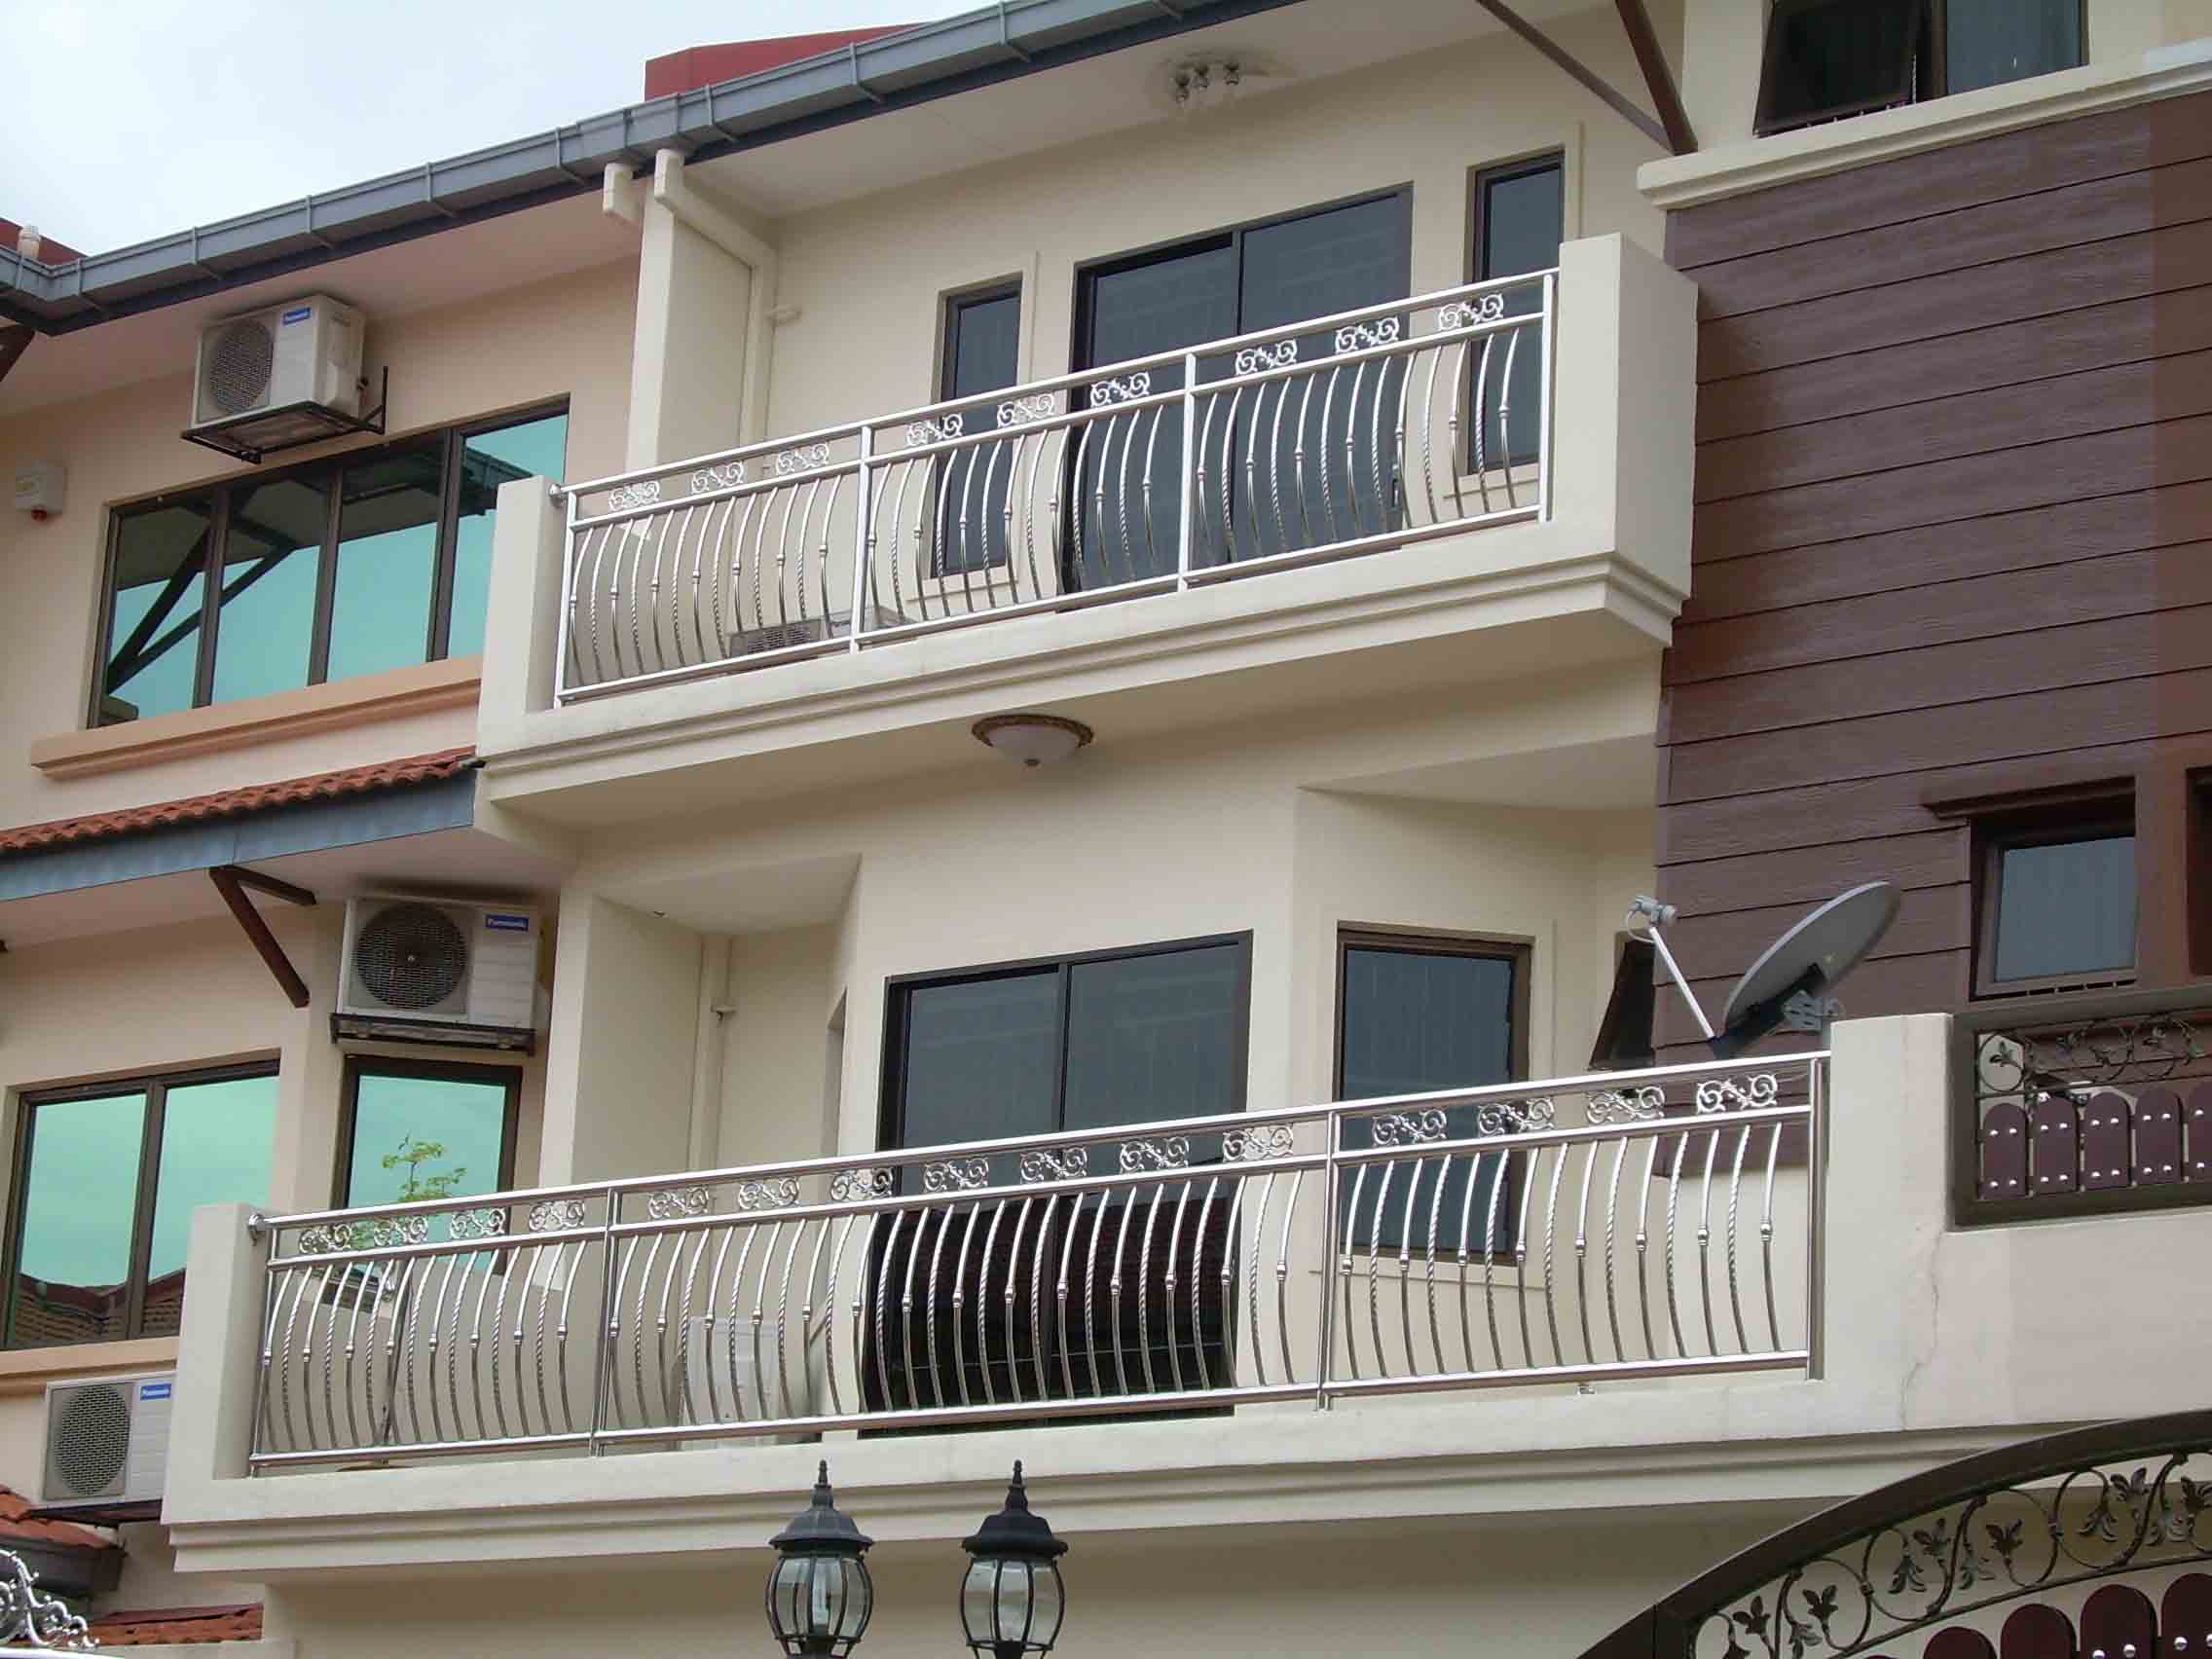 S d ng inox 304 l m c a lan can c u i m g for Balcony designs pictures sri lanka